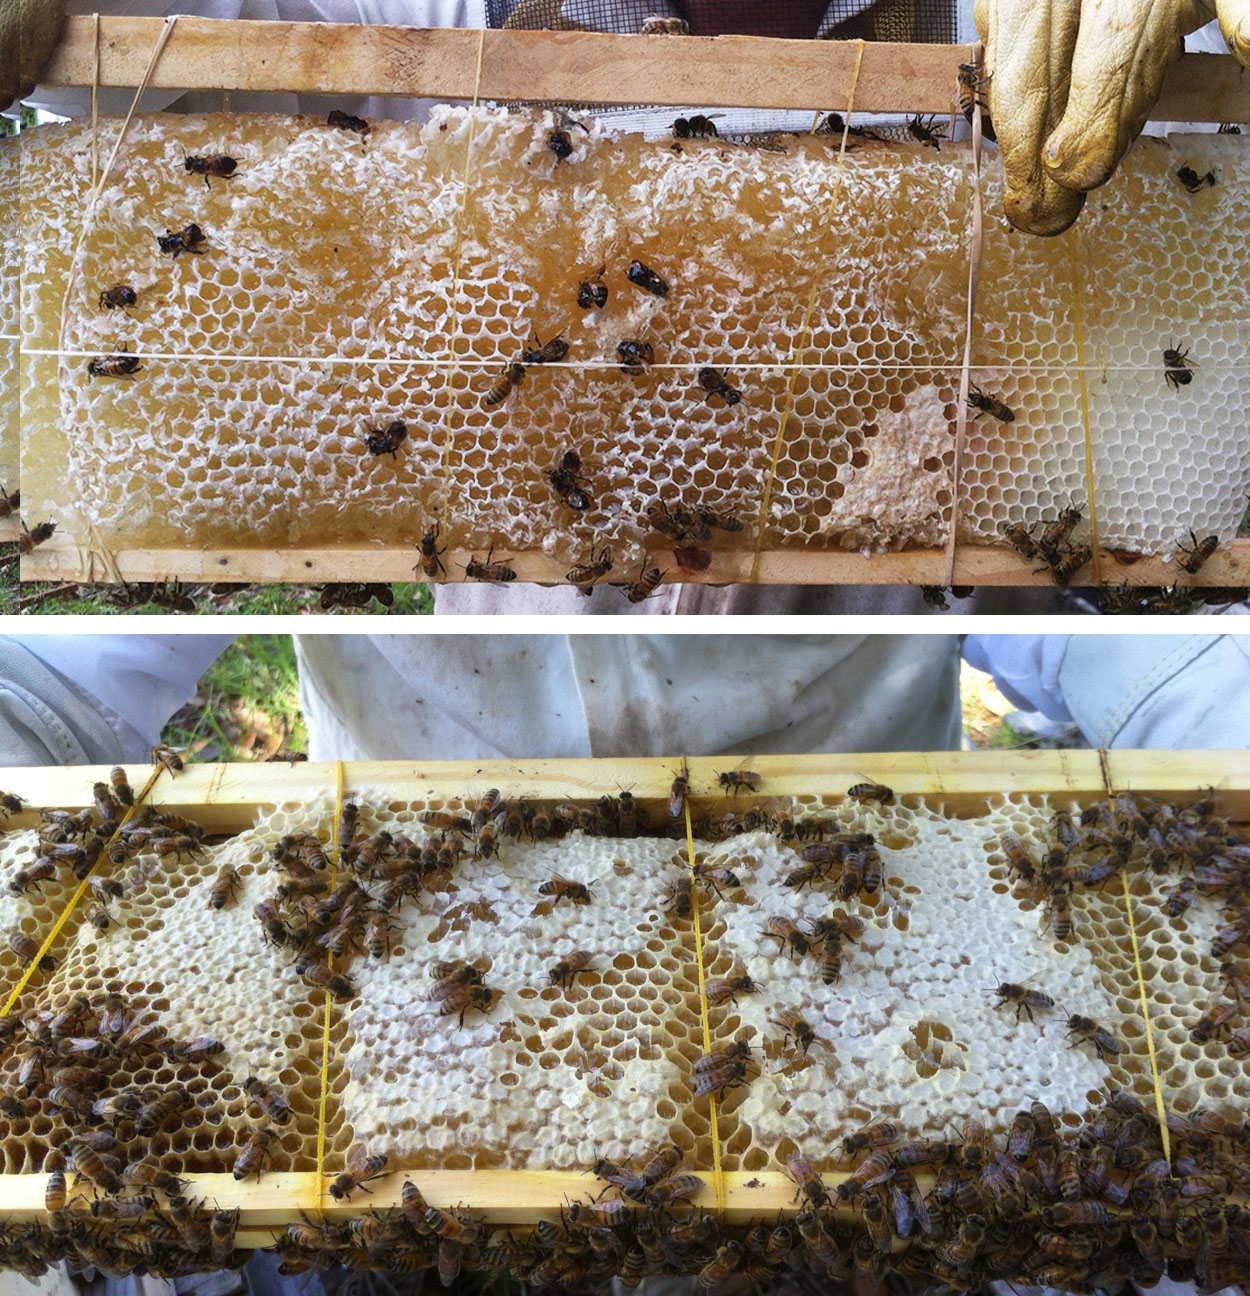 honey frame with rubber bands cross comb